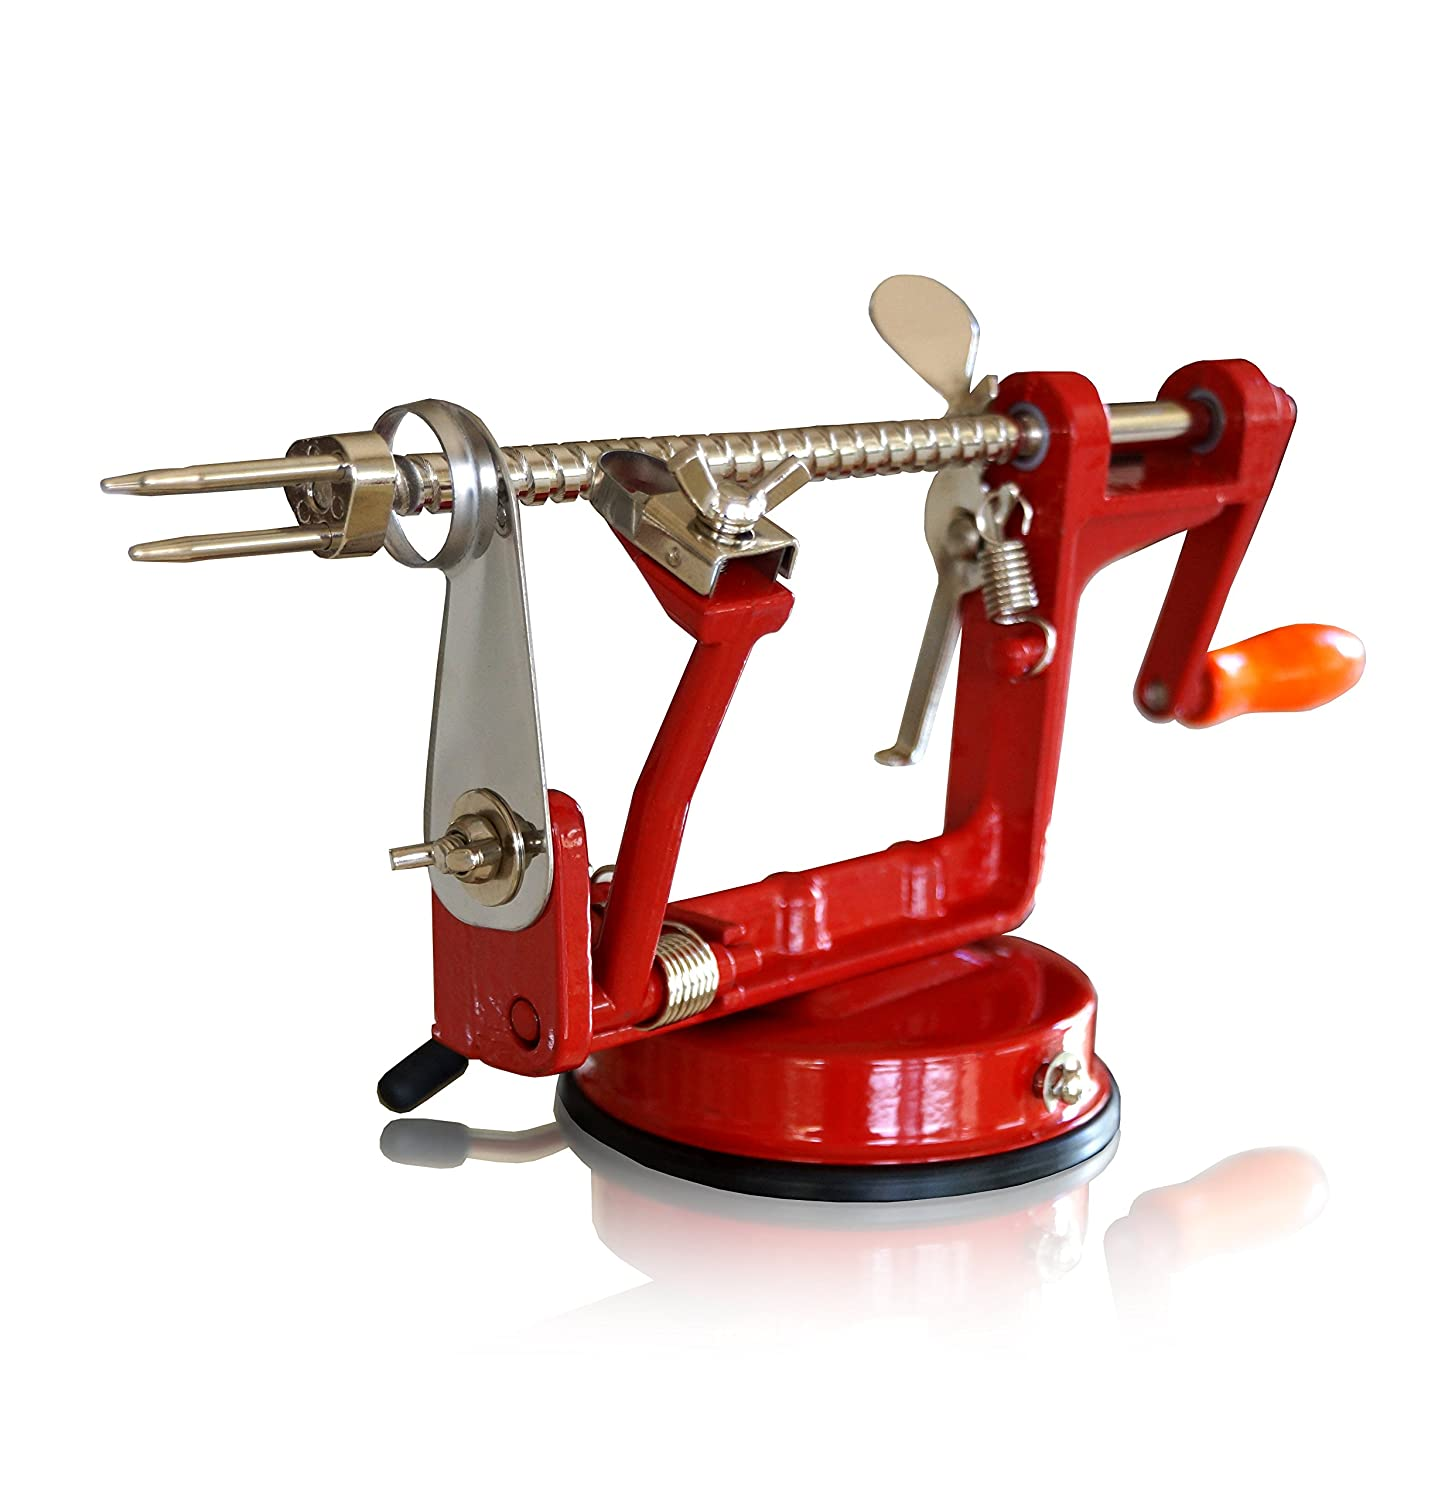 The Best Apple Peeler Reviews & Buyer's Guide 2